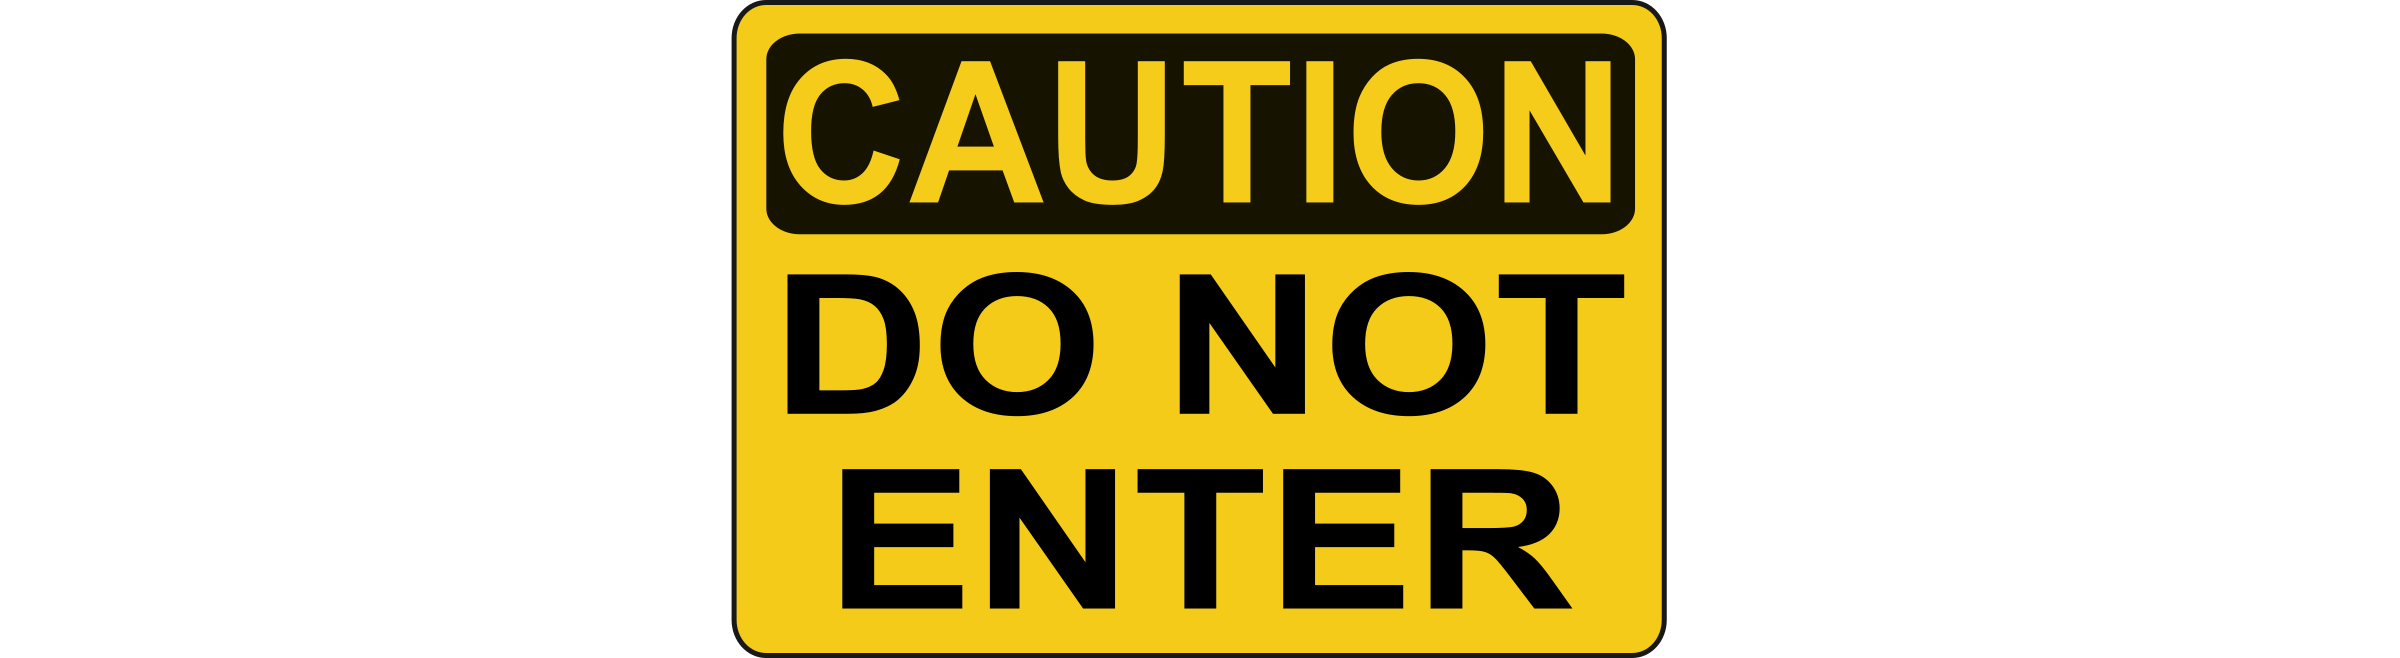 Caution - Do Not Enter by Rfc1394